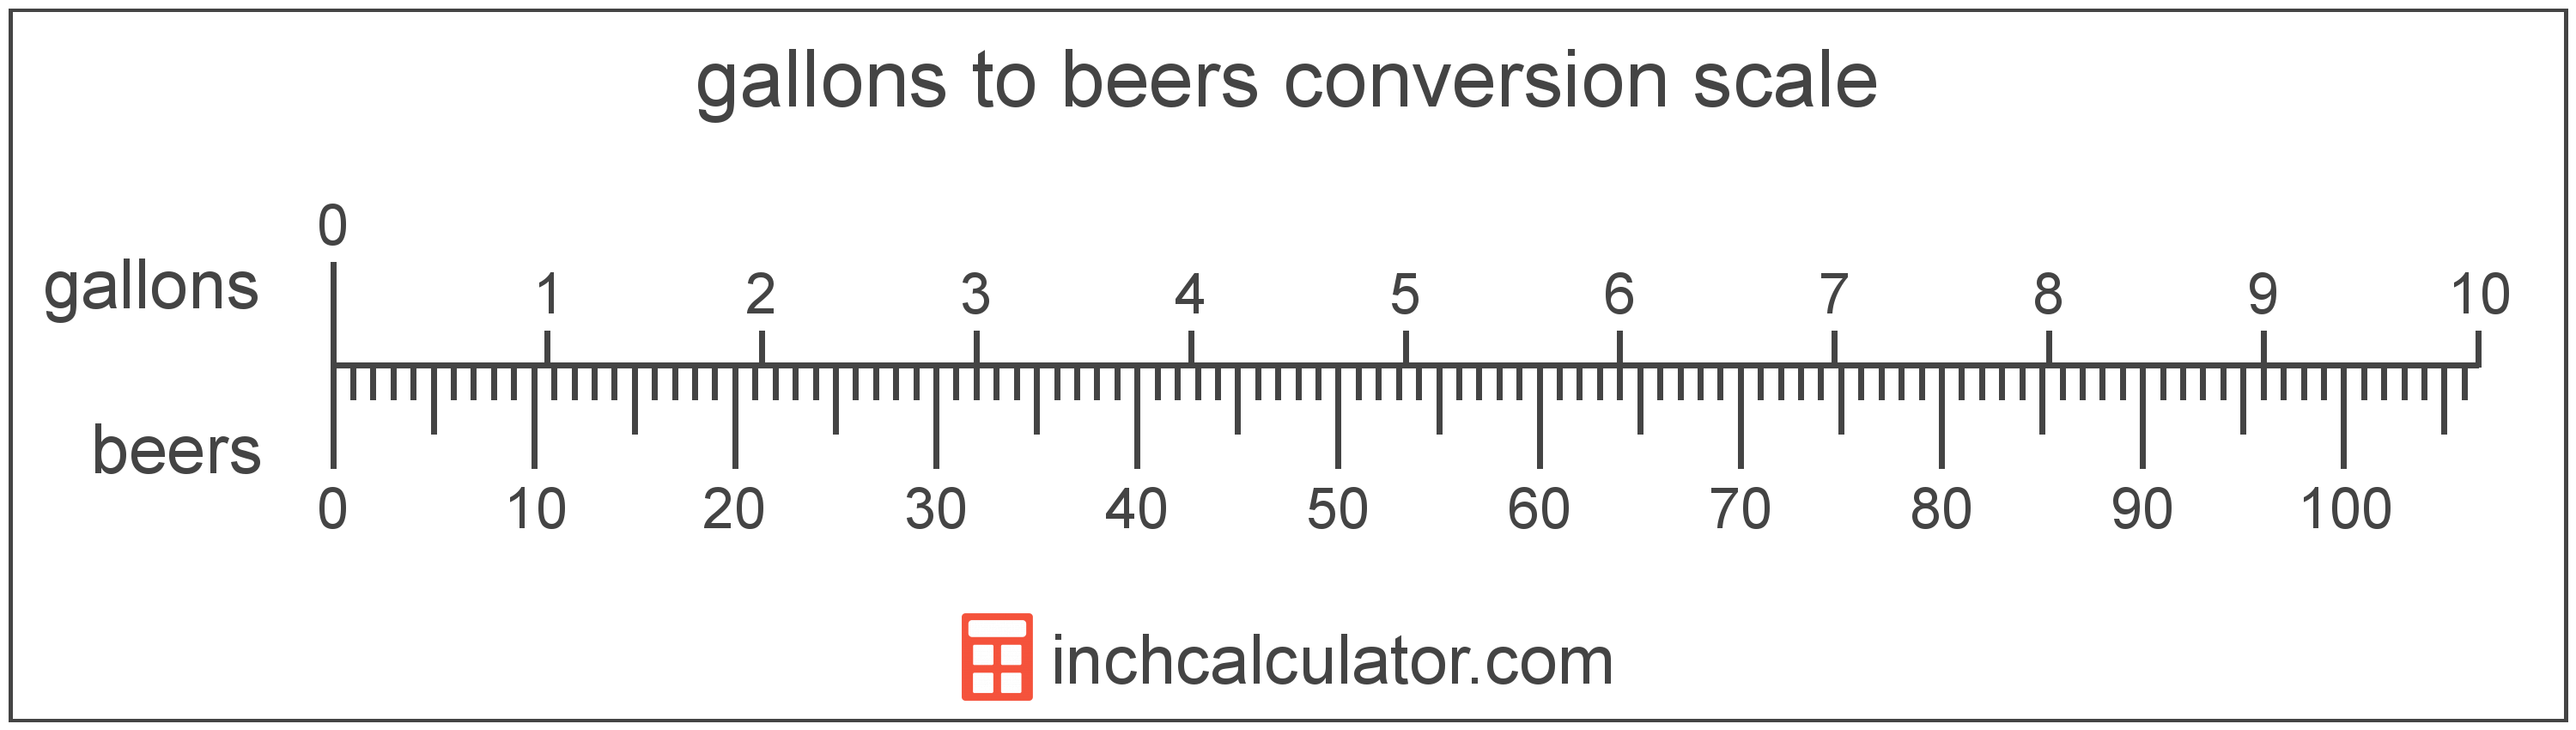 conversion scale showing gallons and equivalent beers beer volume values